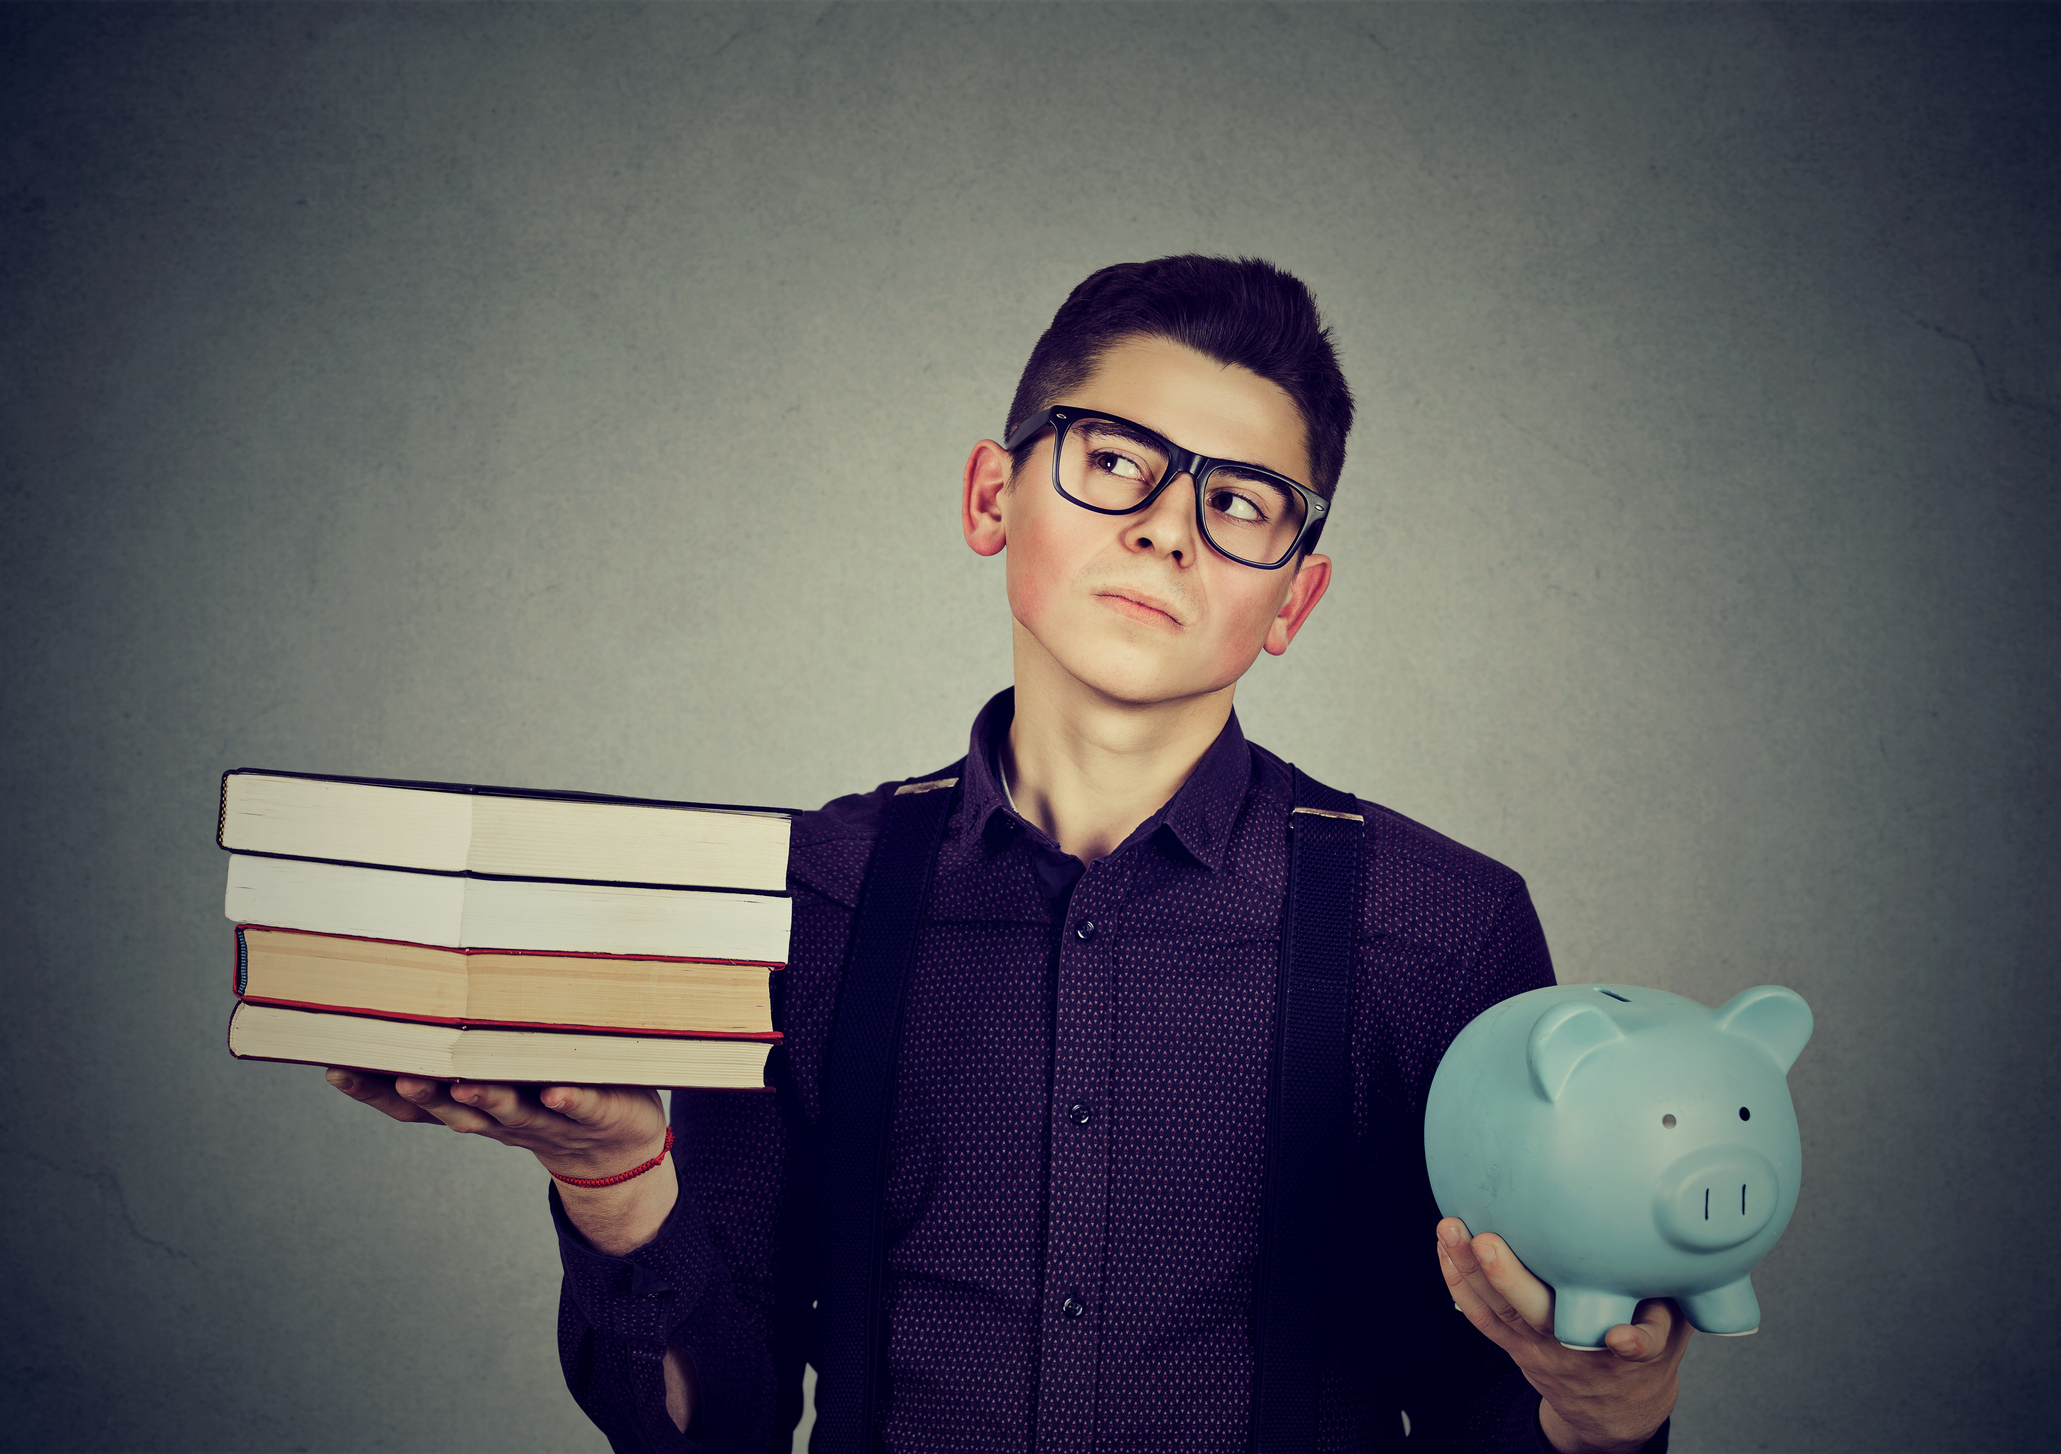 Young man with stack pile of books and piggy bank full of debt